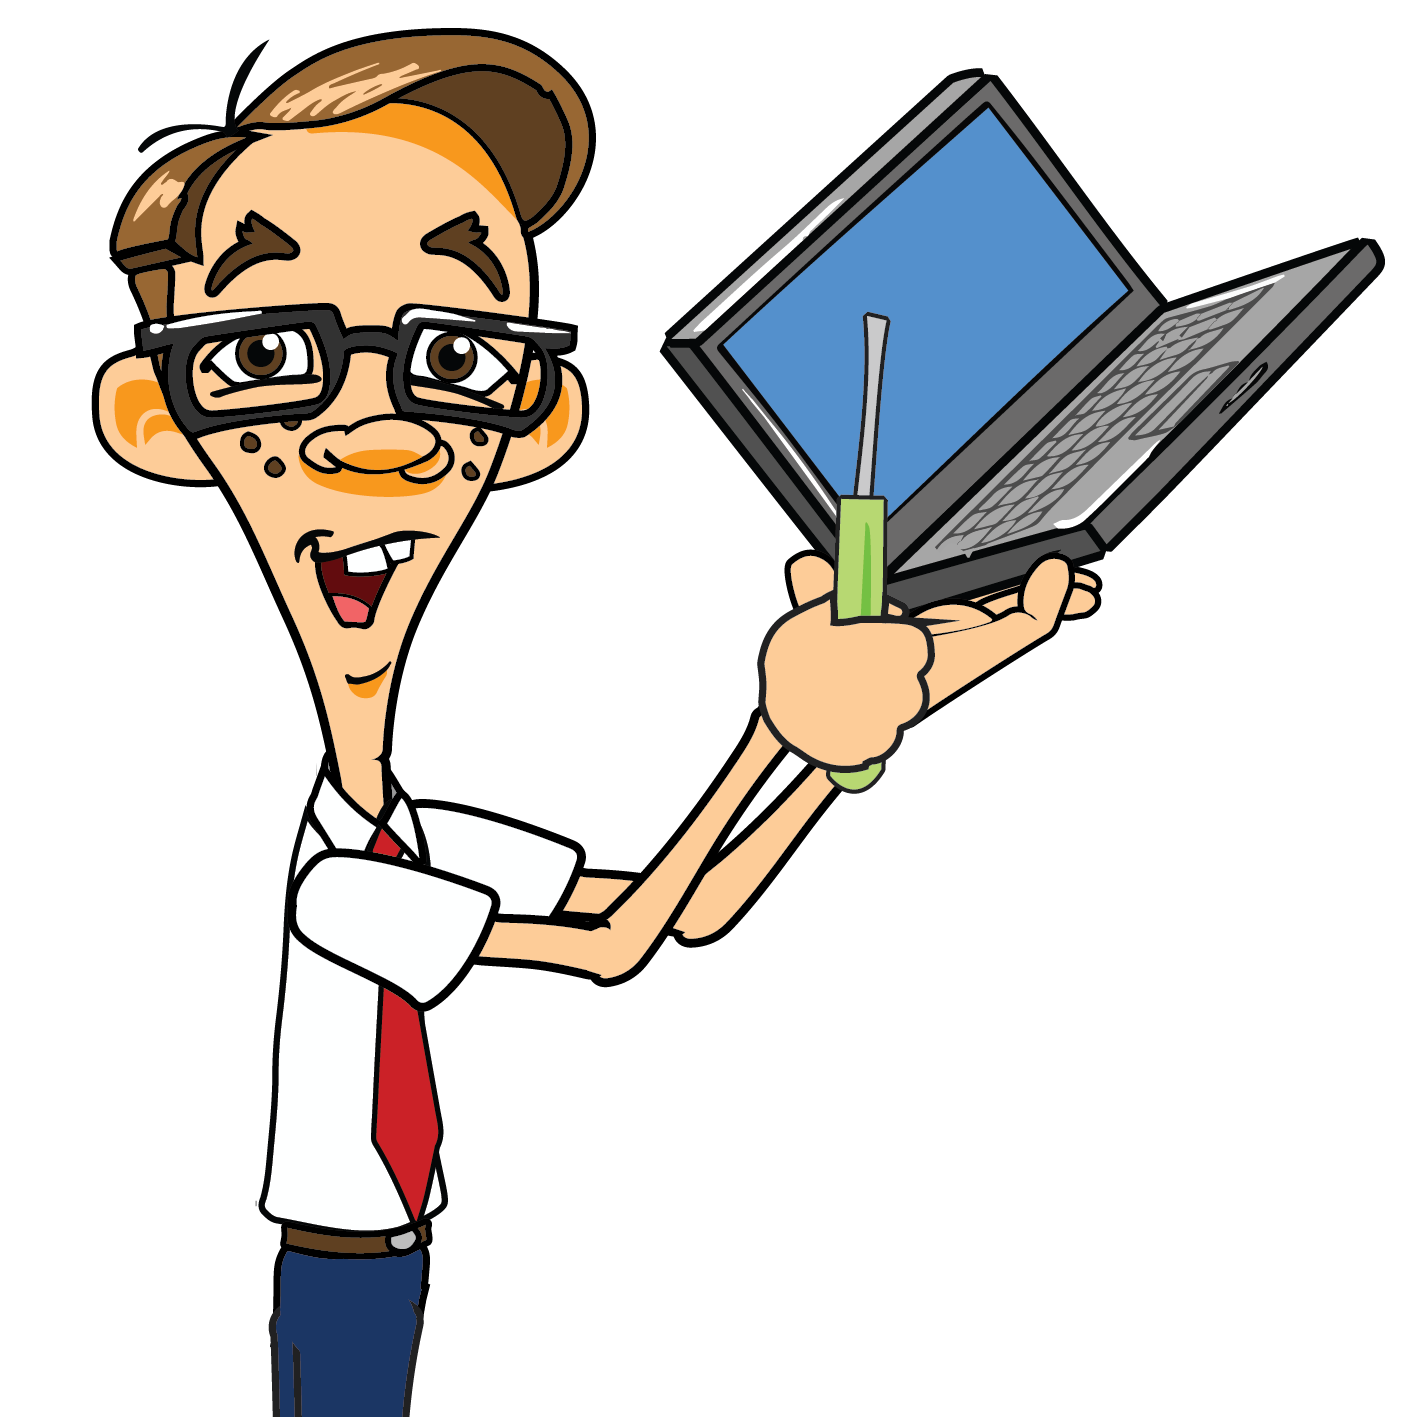 Geek clipart chico Laptop chico Repair